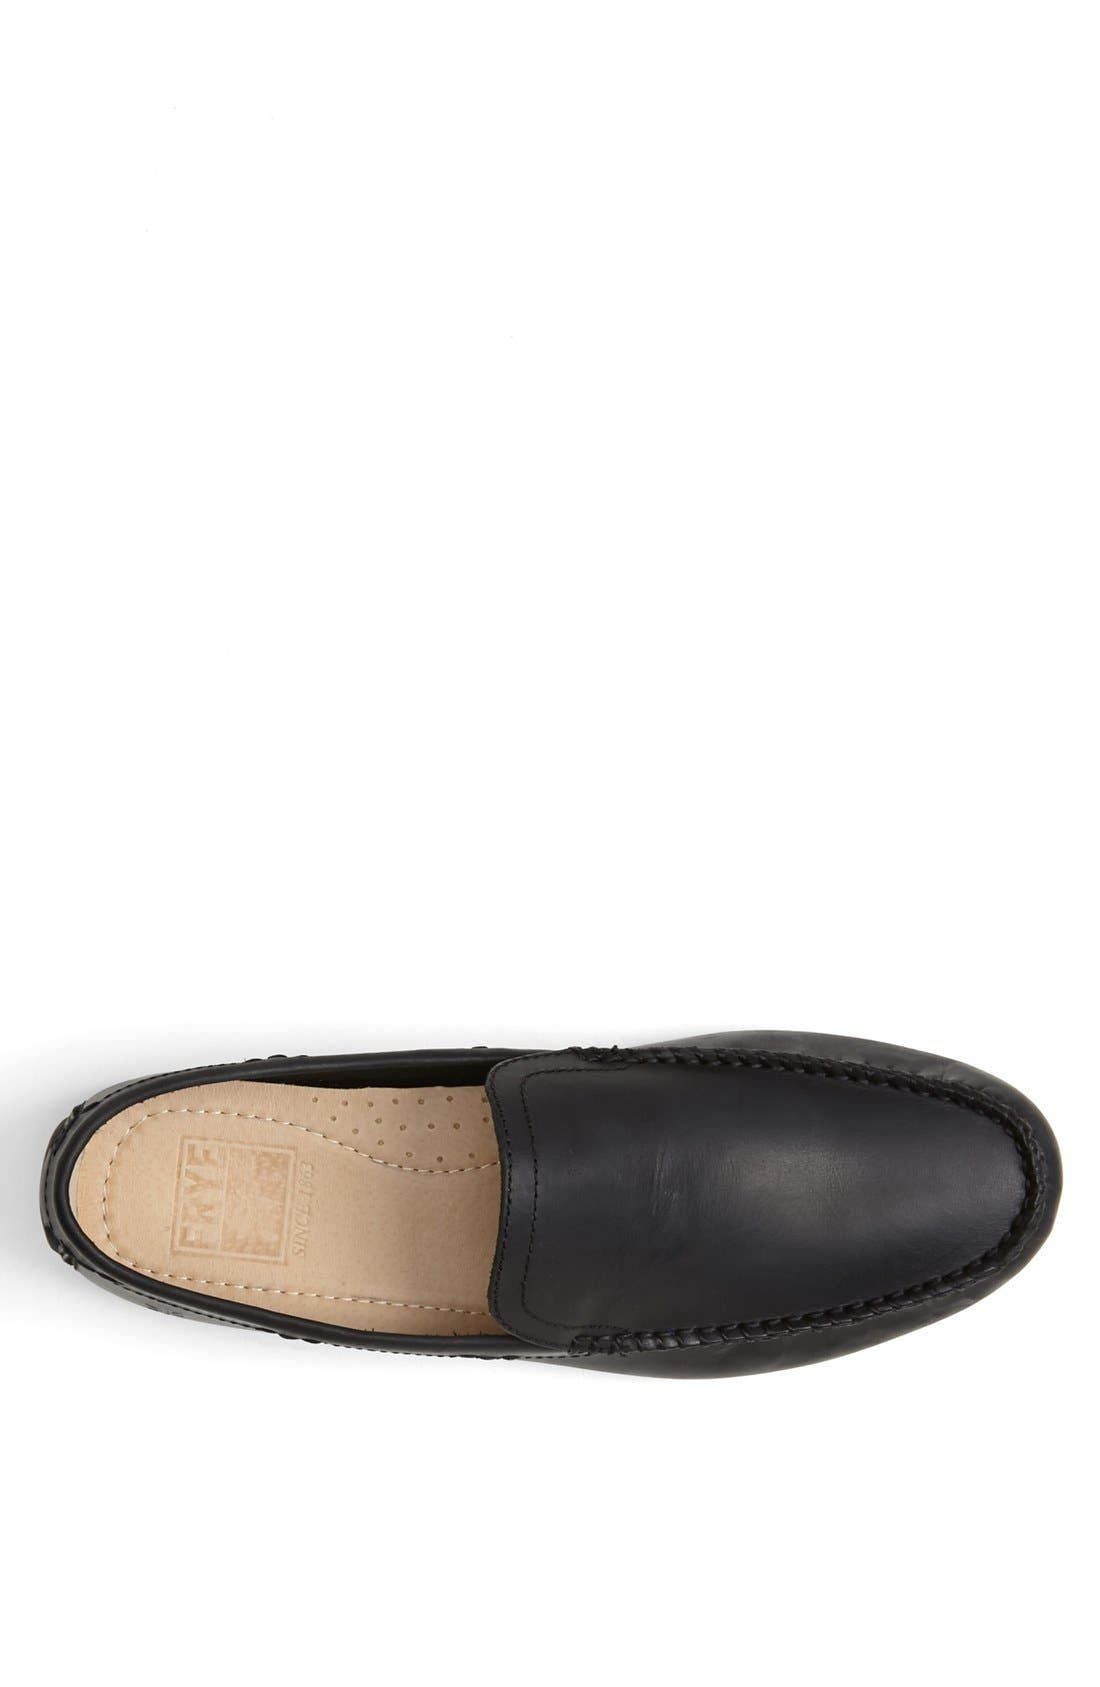 'Lewis' Venetian Loafer,                             Alternate thumbnail 3, color,                             BLACK